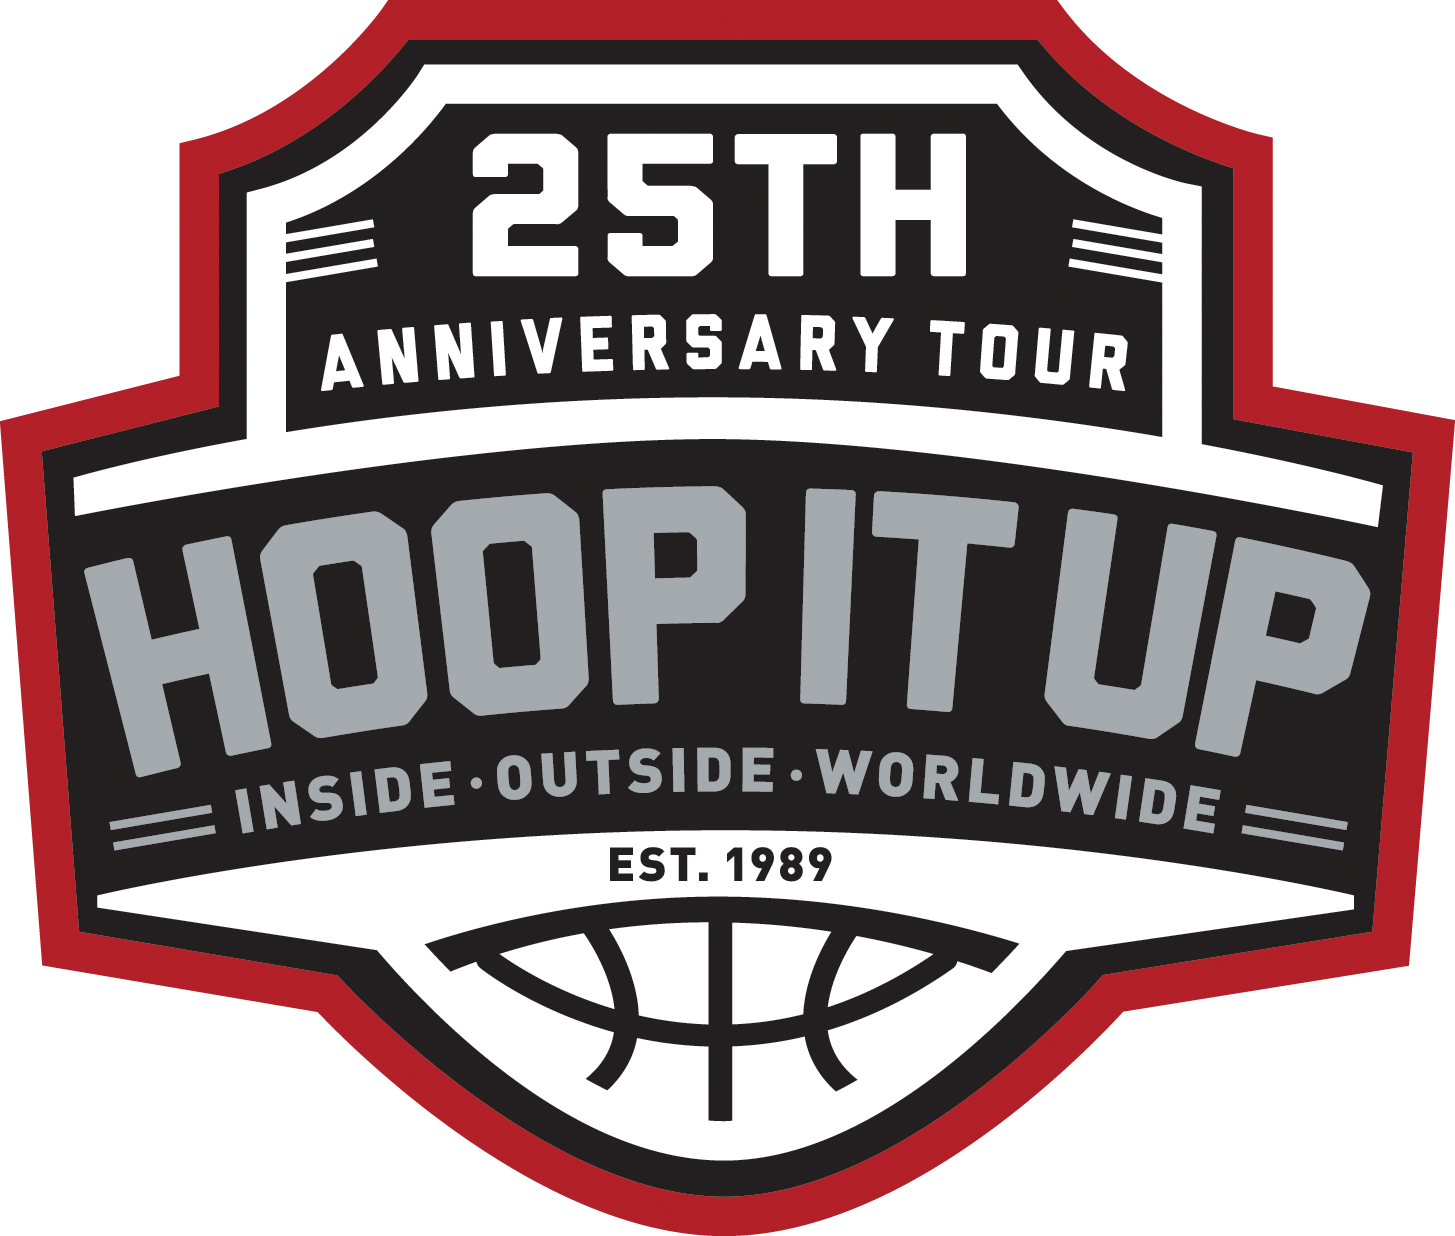 DEADLINE PASSED - TEAM CHECK-IN FRIDAY 5 00 - 7 00 PM at GARDEN CITY MALL   Hoop It Up 3on3 Basketball Tournament Returning to Winnipeg June 28-29 at  Garden ... 1a7c4fb20